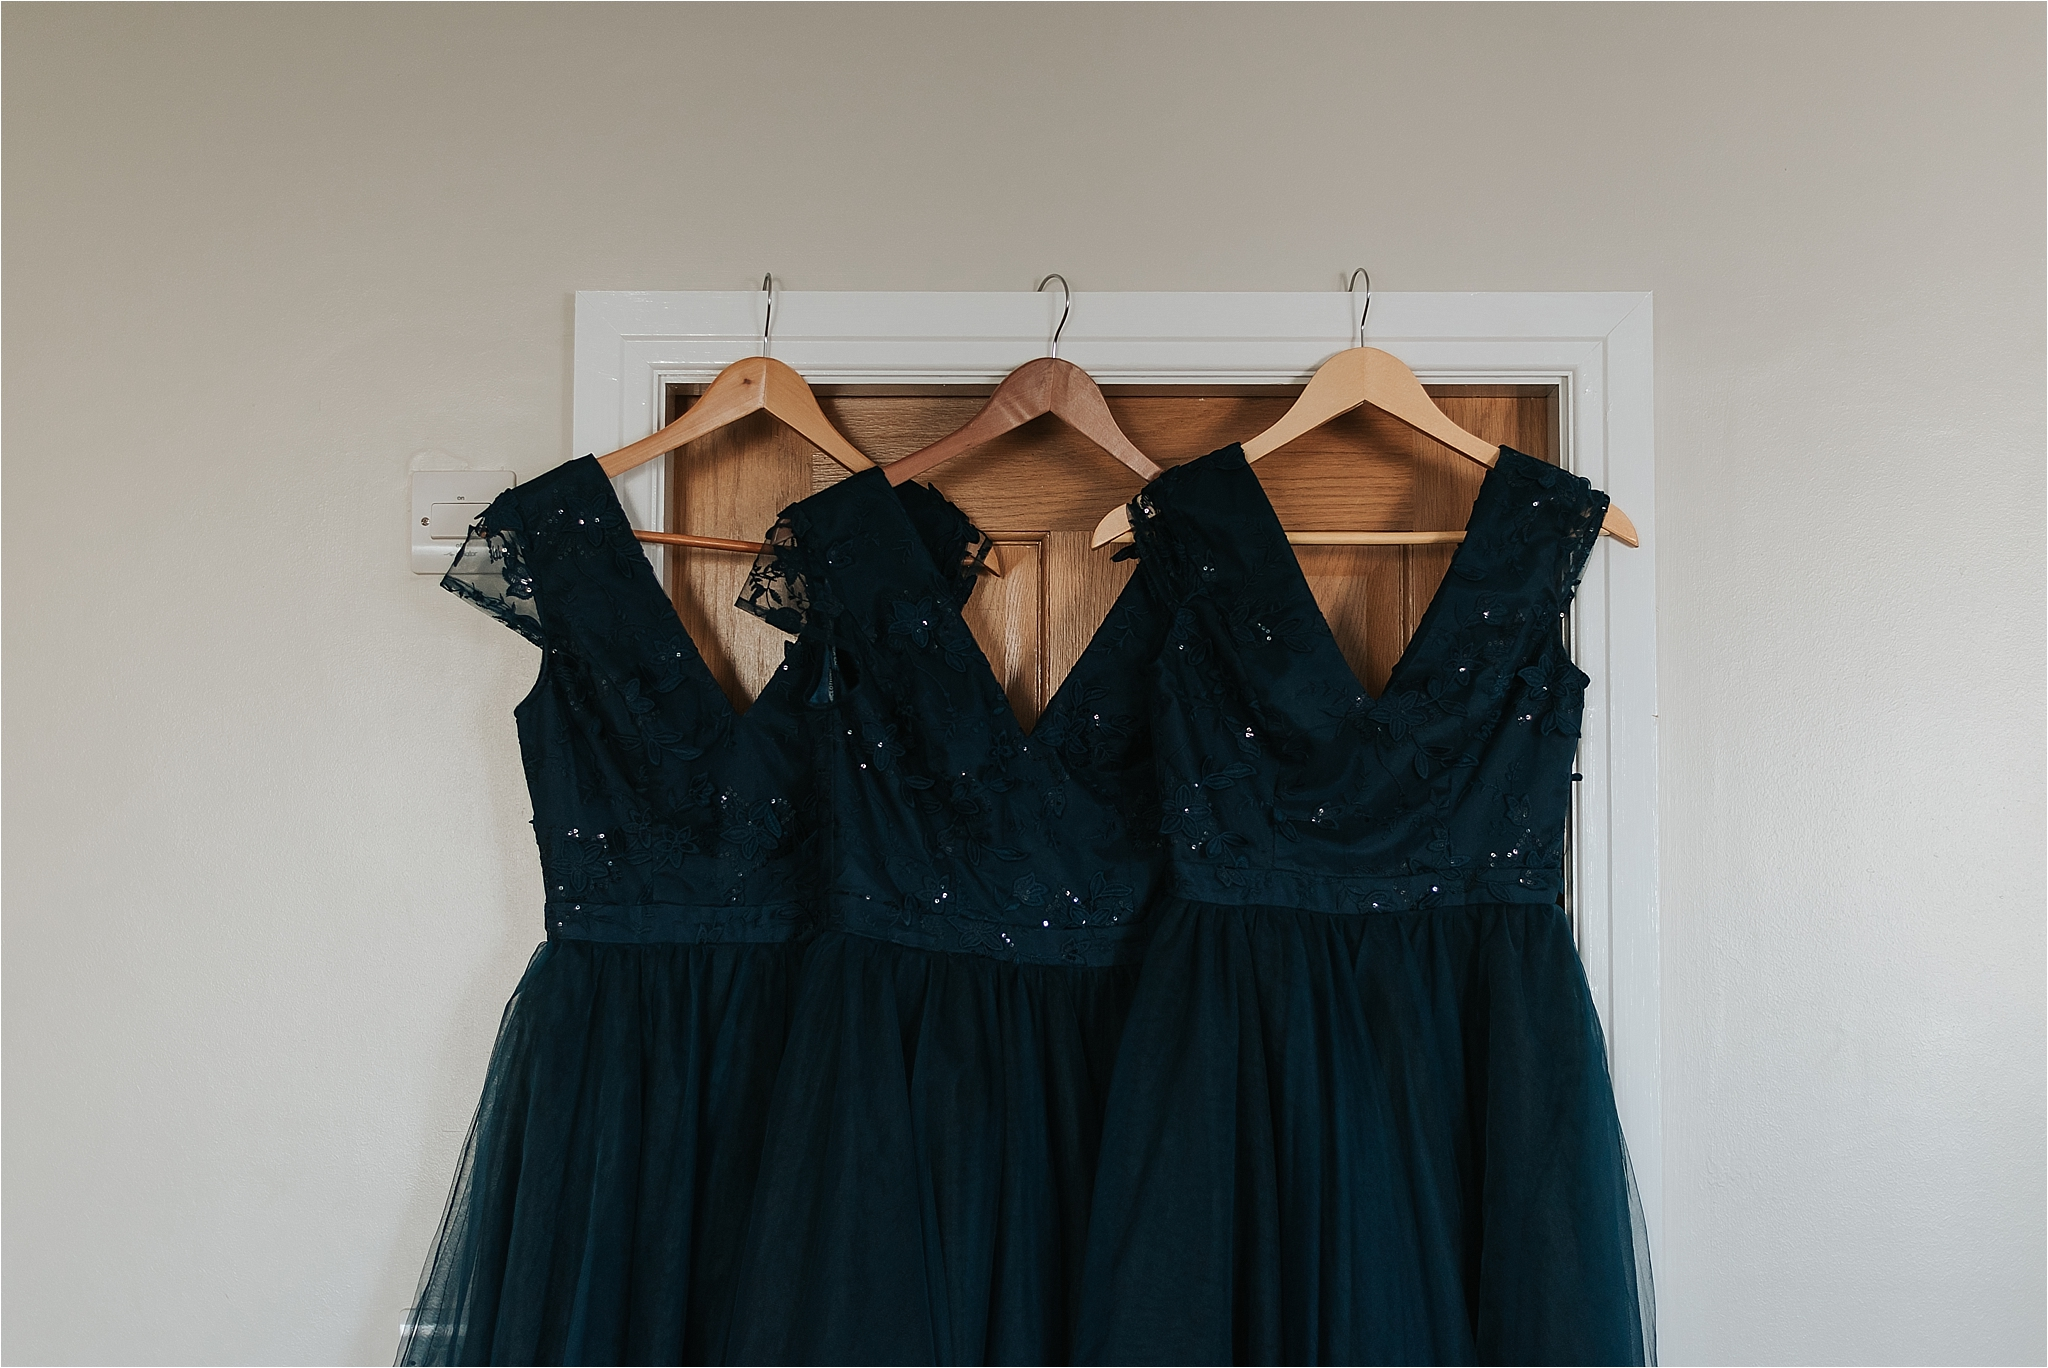 bridesmaid dresses hanging on door